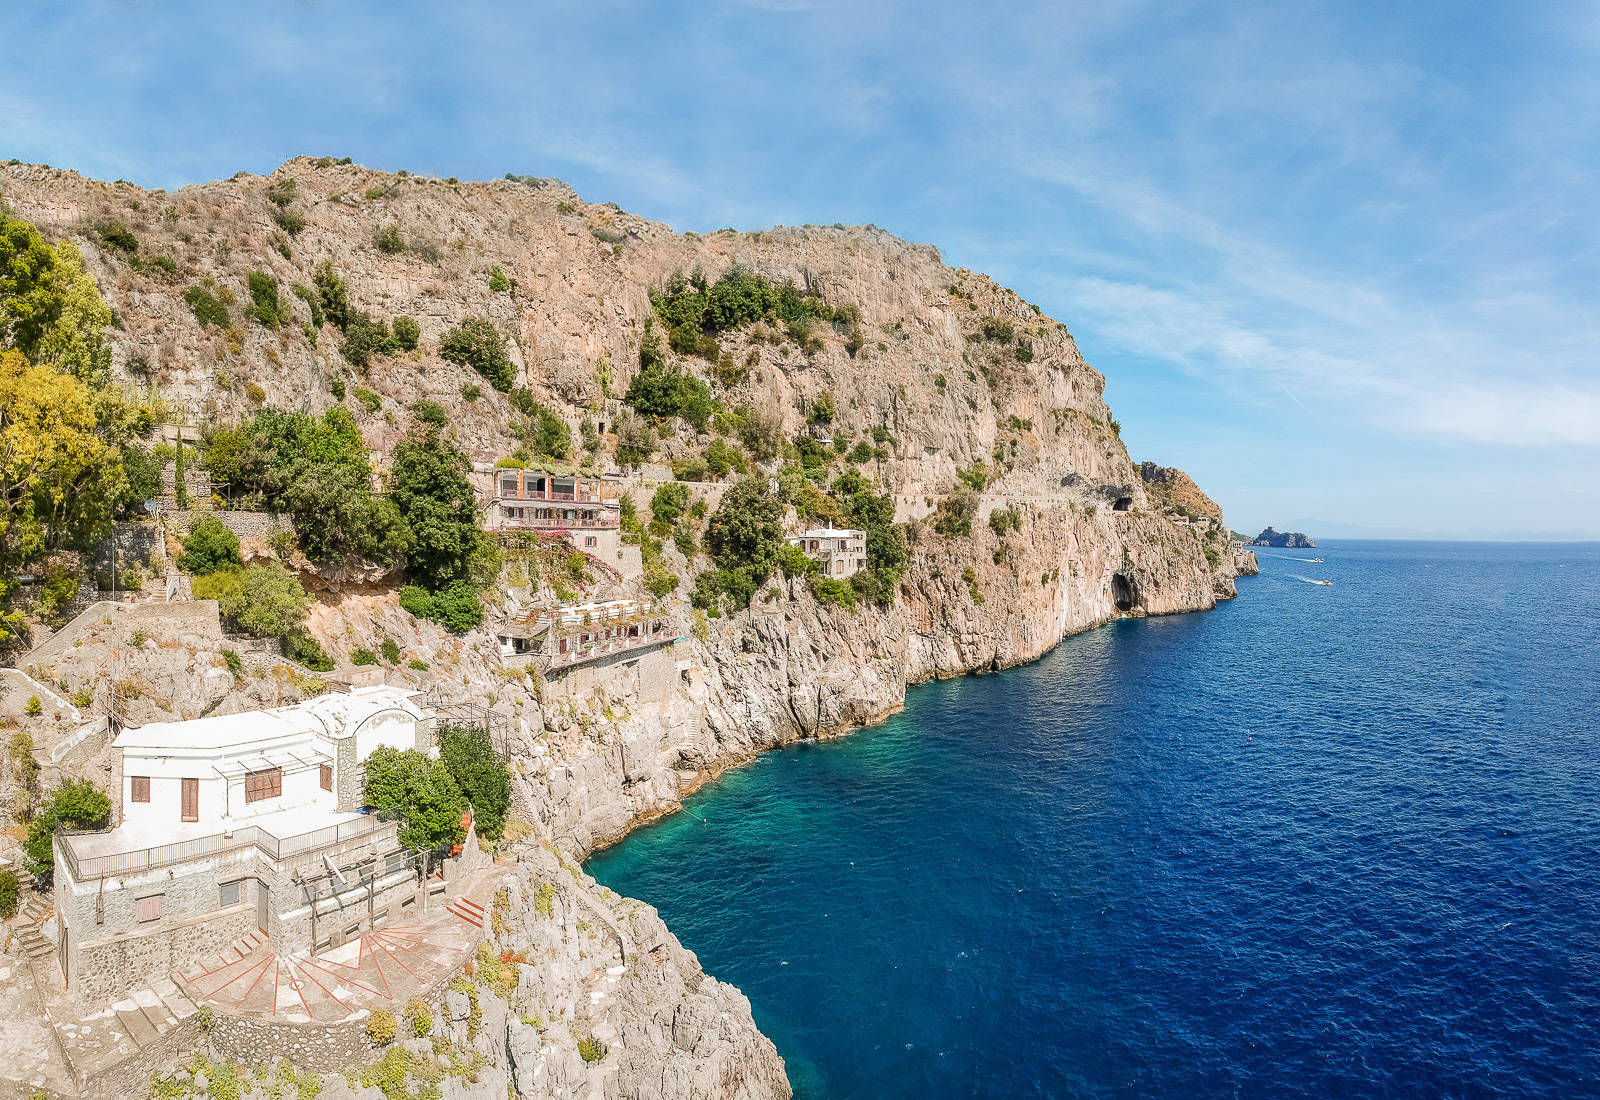 sea-front villa for sale in Furore, near Amalfi